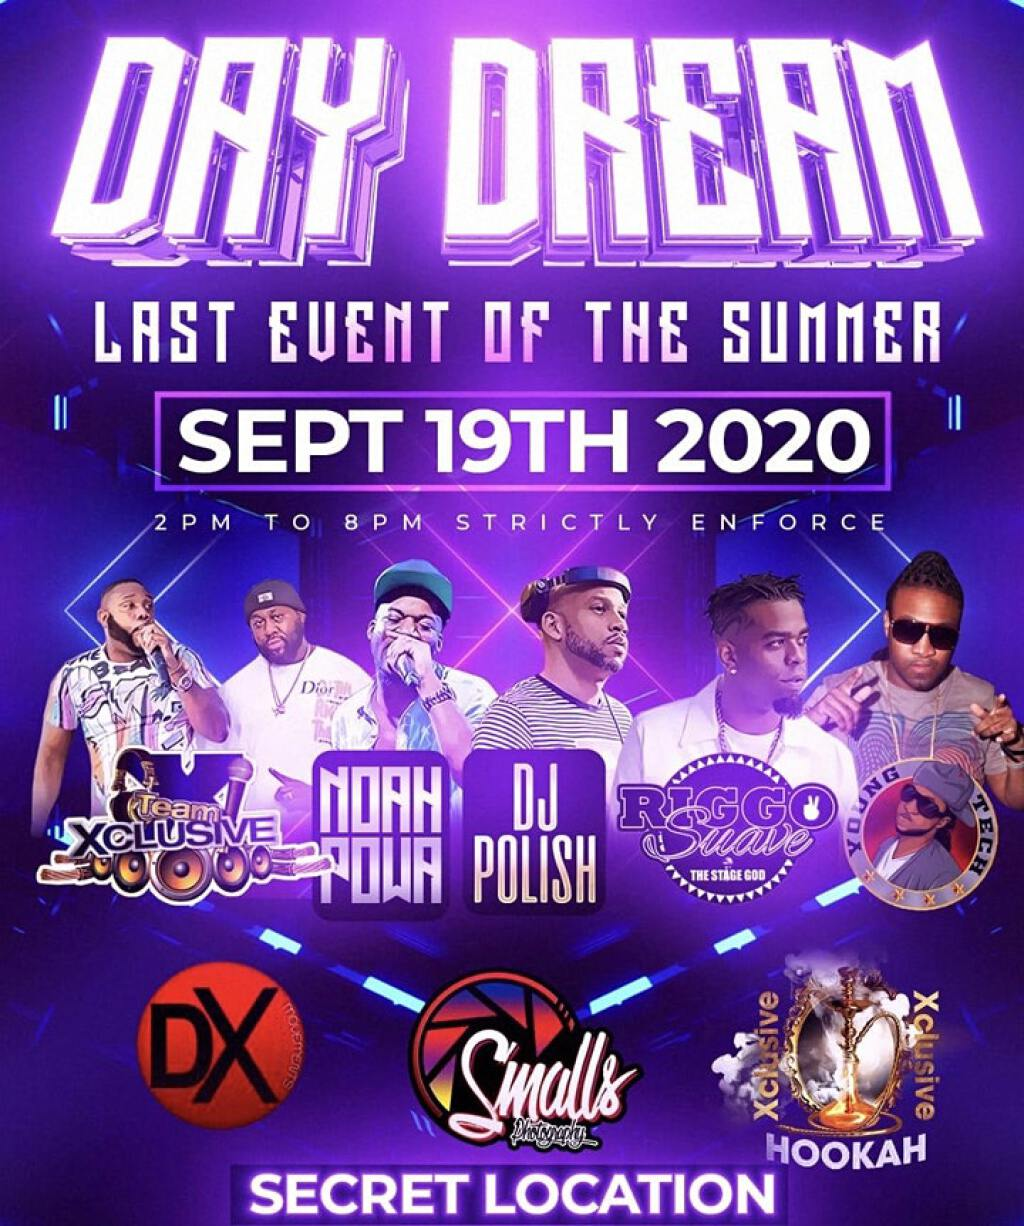 Day Dream flyer or graphic.